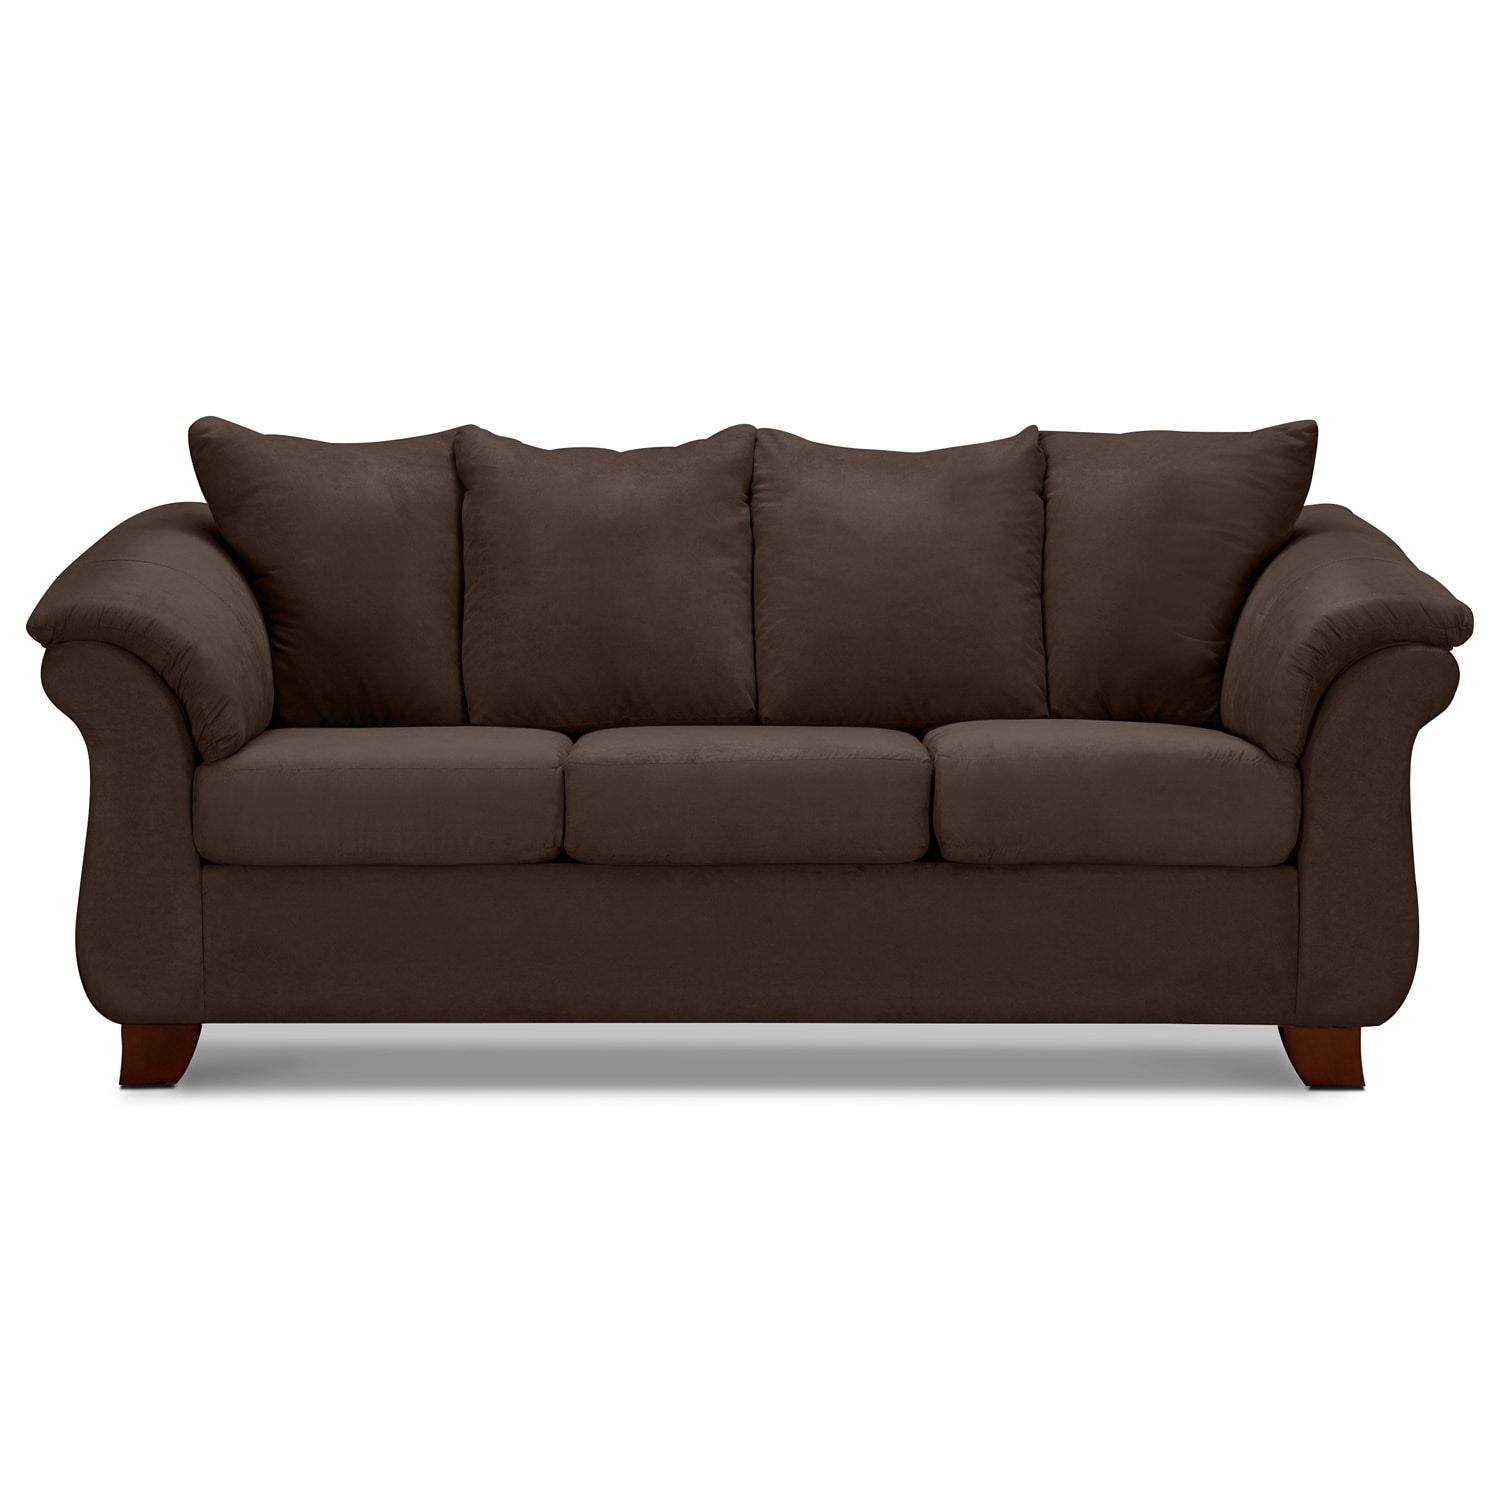 adrian chocolate sofa value city furniture. Black Bedroom Furniture Sets. Home Design Ideas